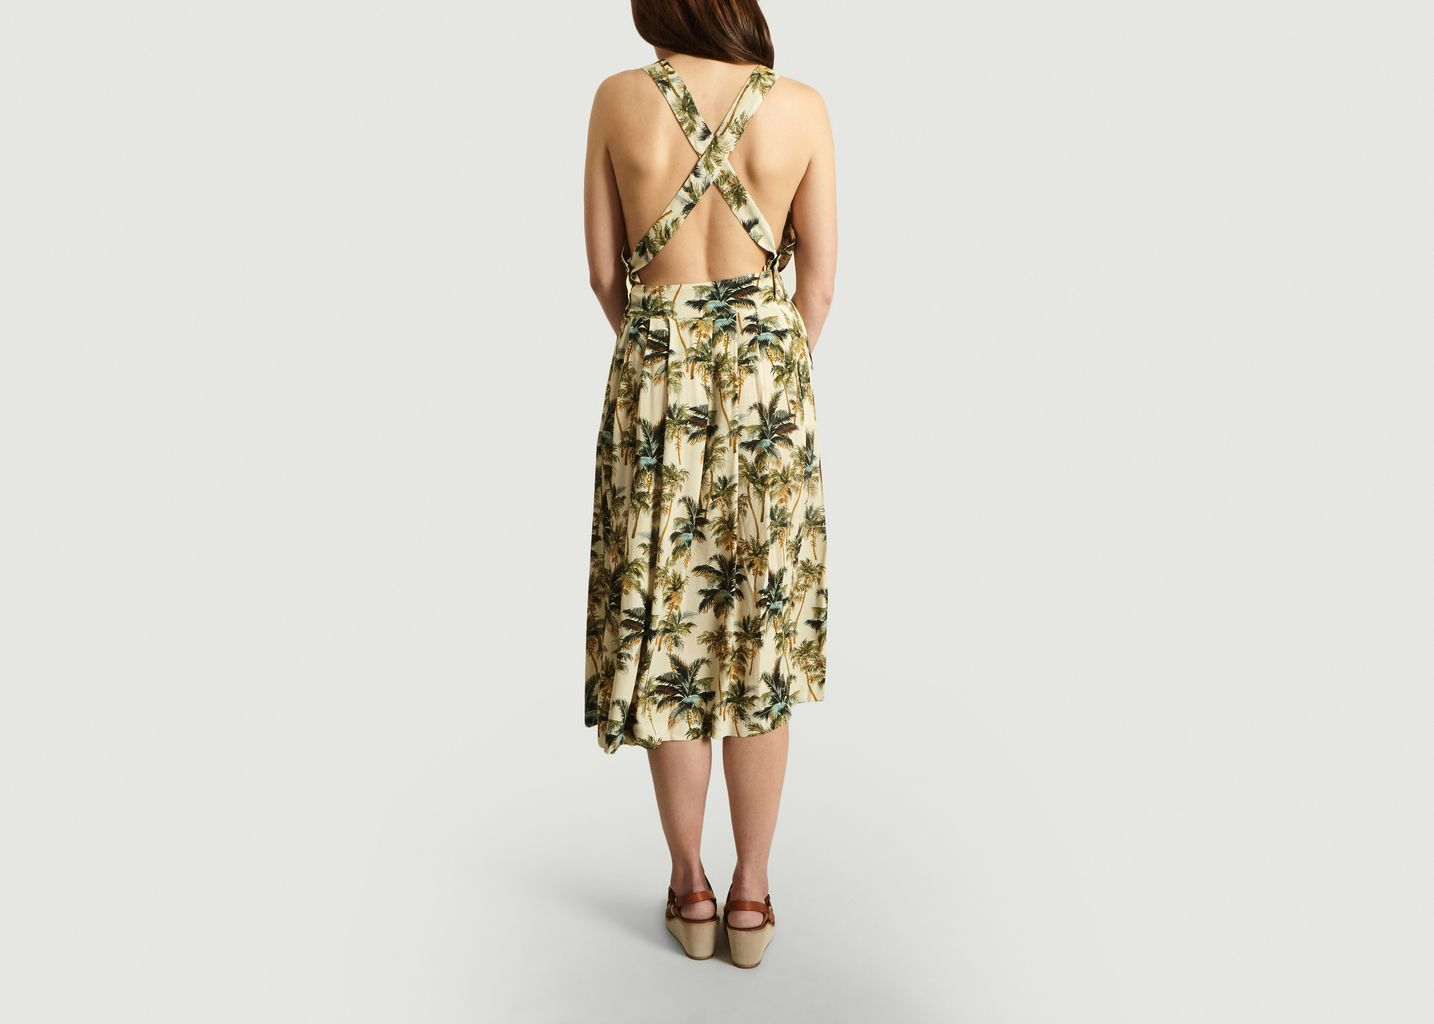 Robe-Tablier Motif Tropical Loreen - My Sunday Morning